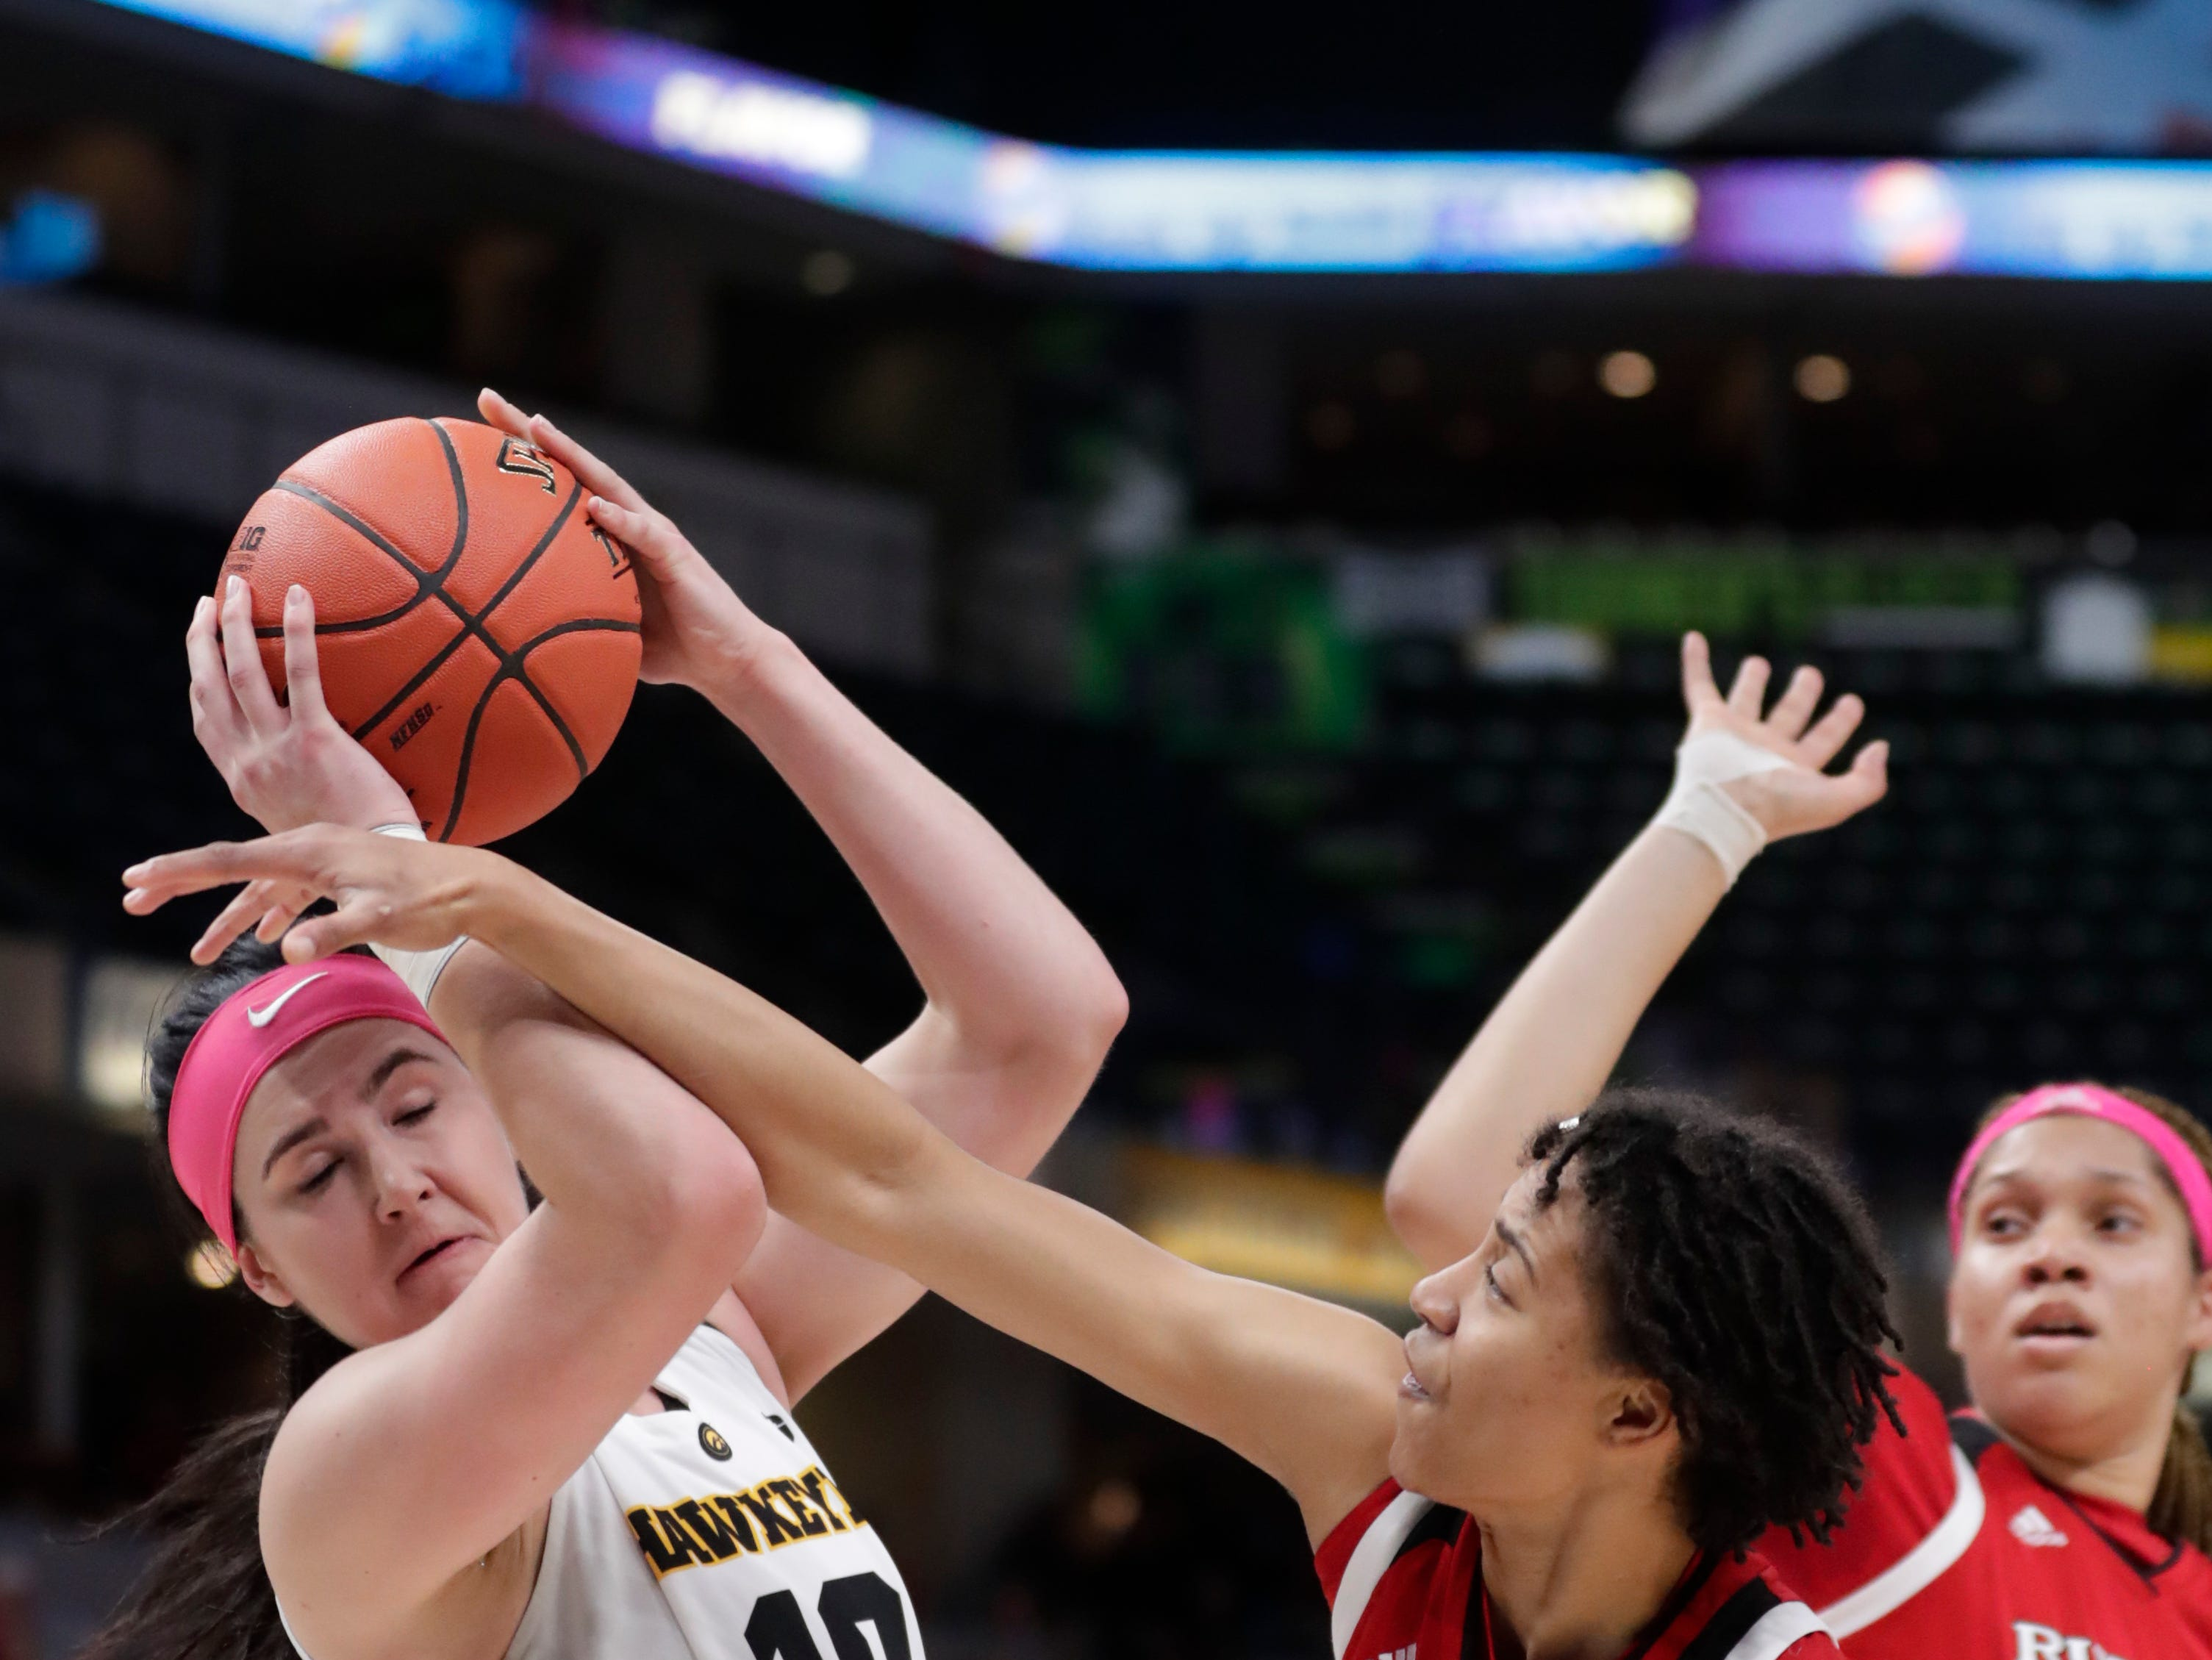 Rutgers guard Zipporah Broughton (1) fouls Iowa forward Megan Gustafson (10) in the first half of an NCAA college basketball semifinal game at the Big Ten Conference tournament in Indianapolis, Saturday, March 9, 2019.